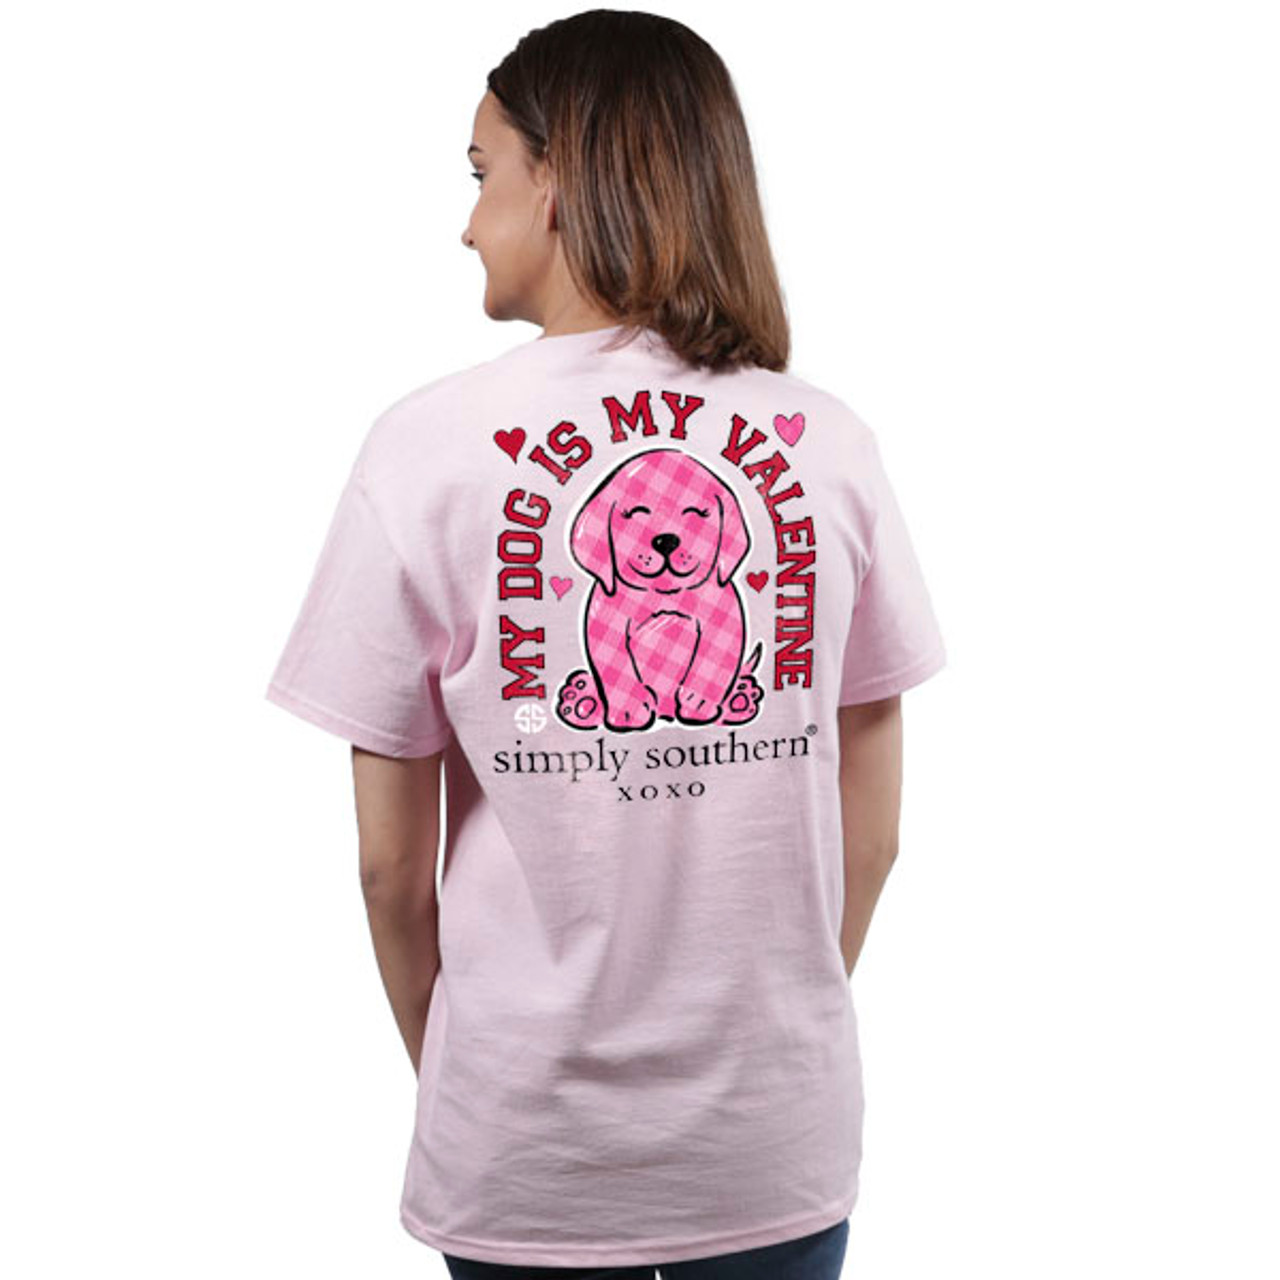 67095ece1ca Simply Southern SS Tee - Preppy Valentine - Cordial Lee